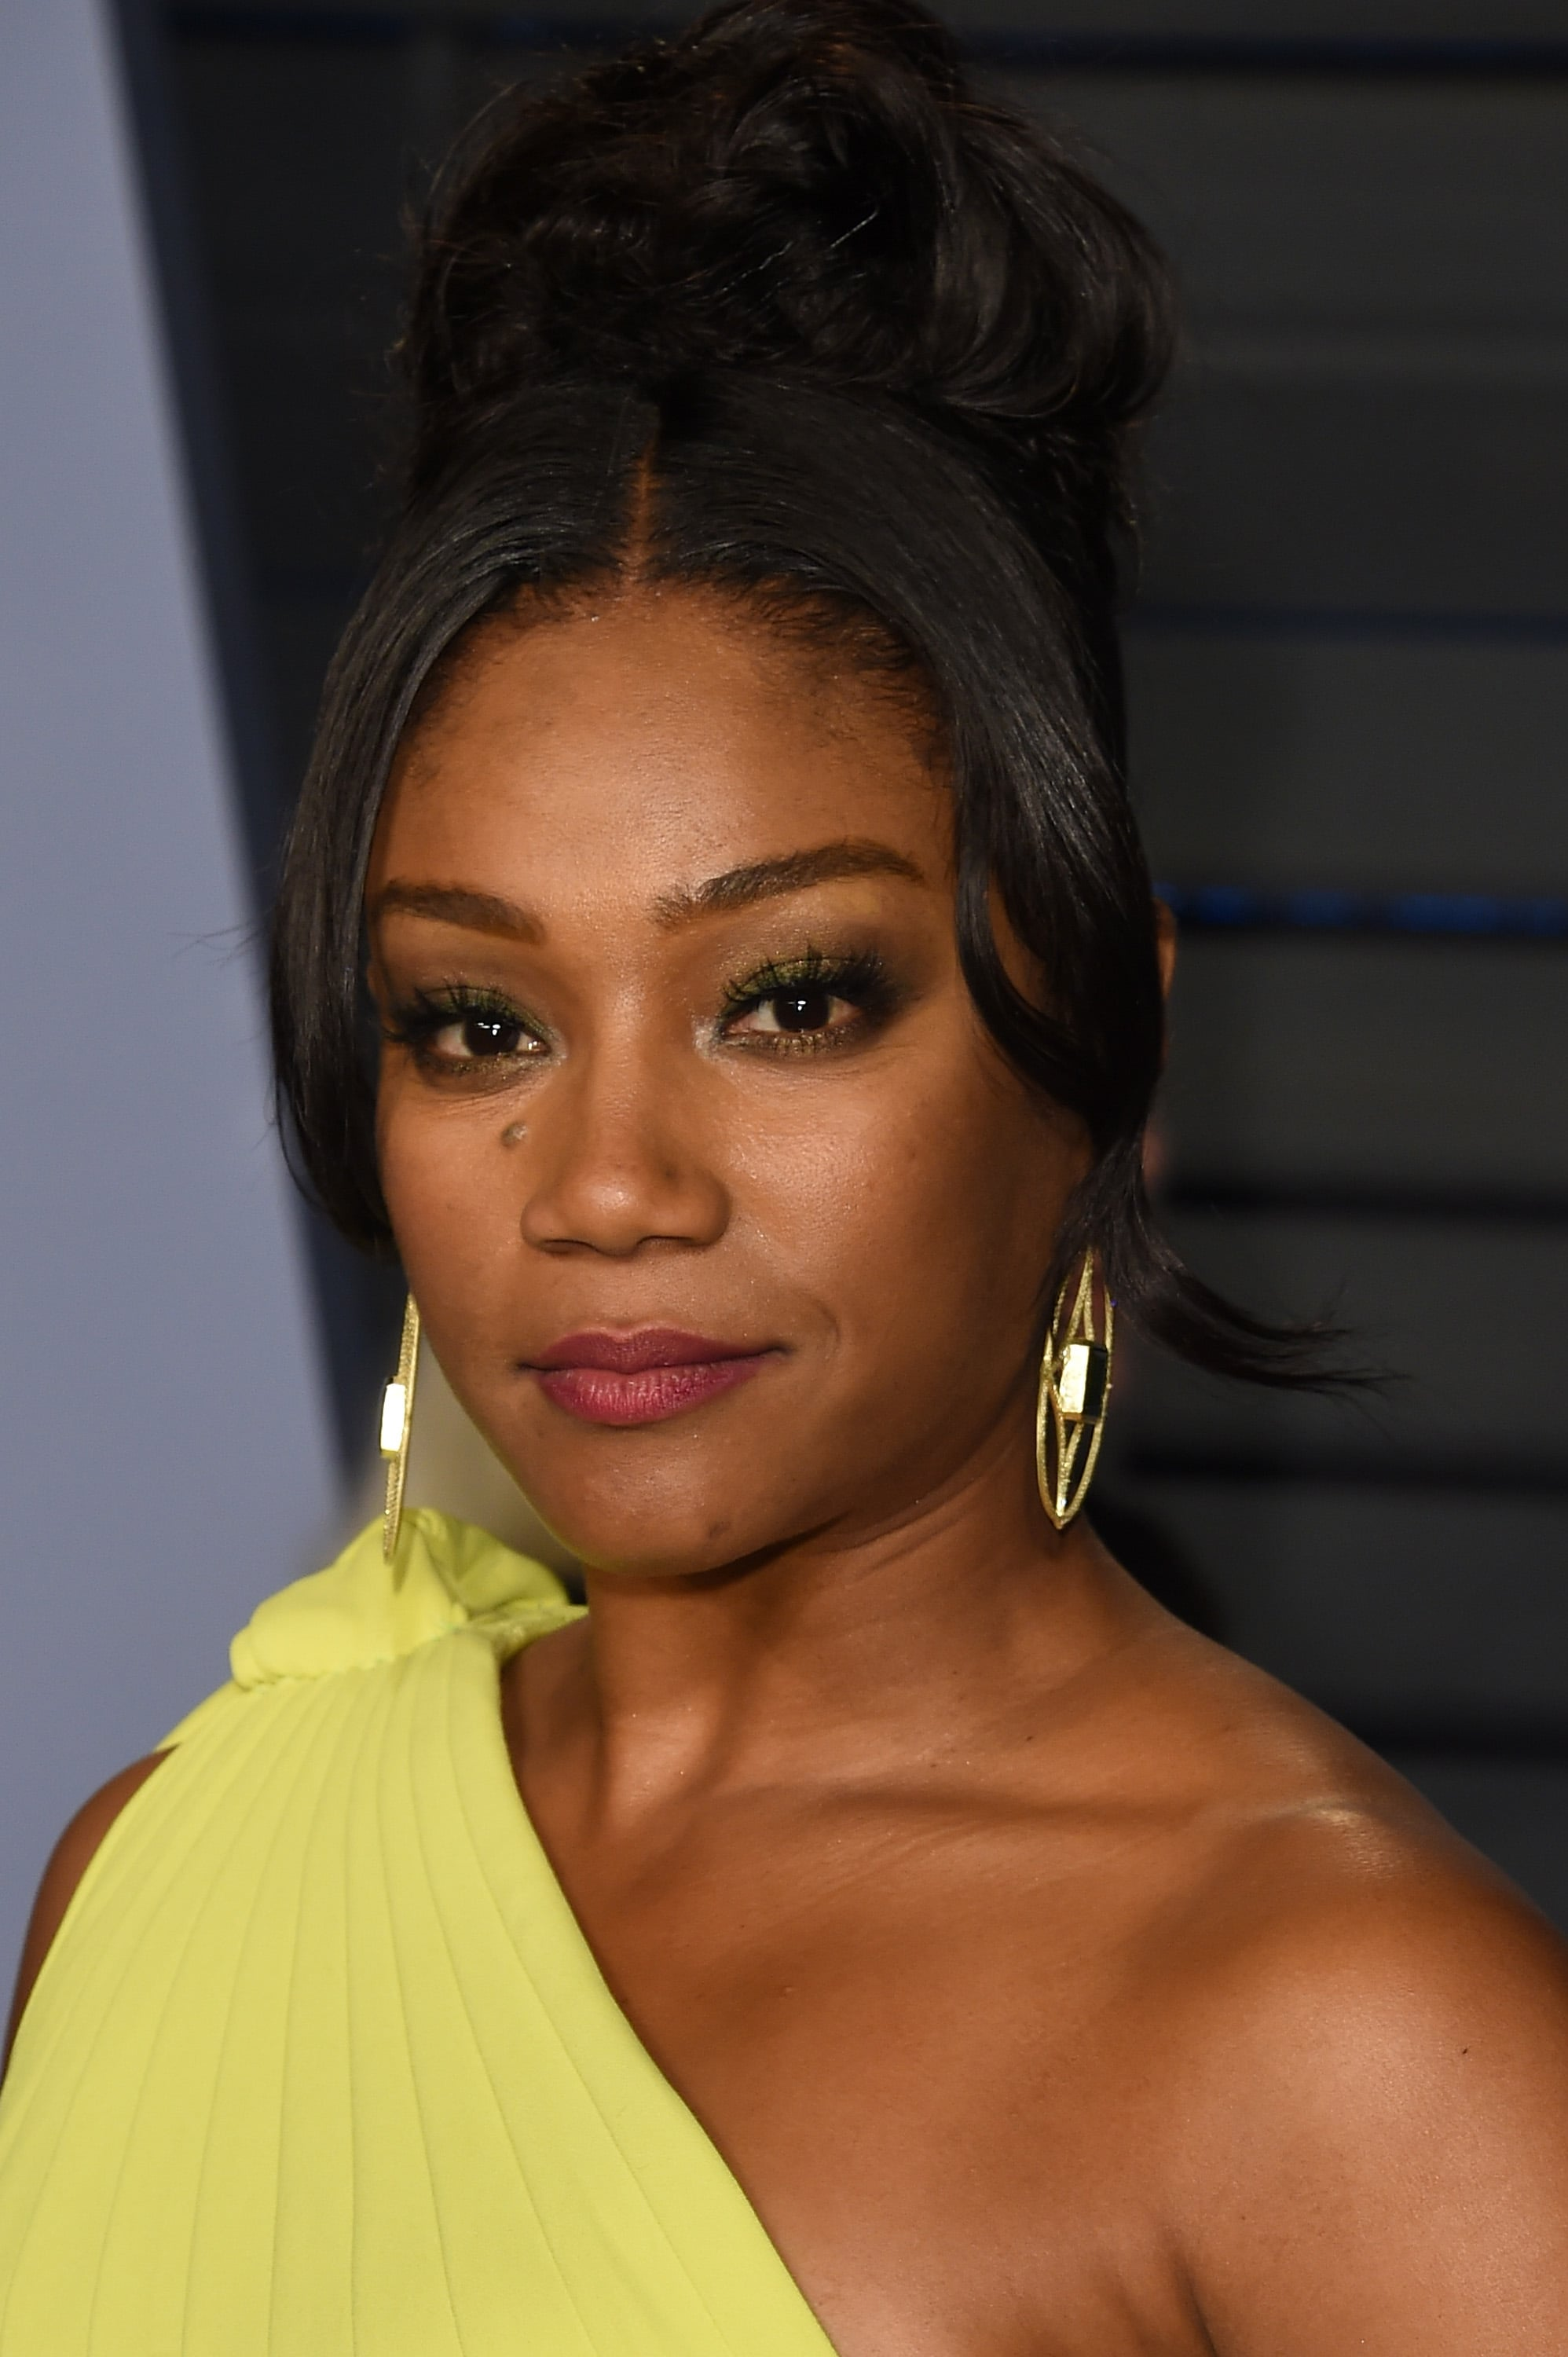 BEVERLY HILLS, CA - MARCH 04:  Tiffany Haddish attends the 2018 Vanity Fair Oscar Party hosted by Radhika Jones at the Wallis Annenberg Center for the Performing Arts on March 4, 2018 in Beverly Hills, California.  (Photo by J. Merritt/Getty Images)